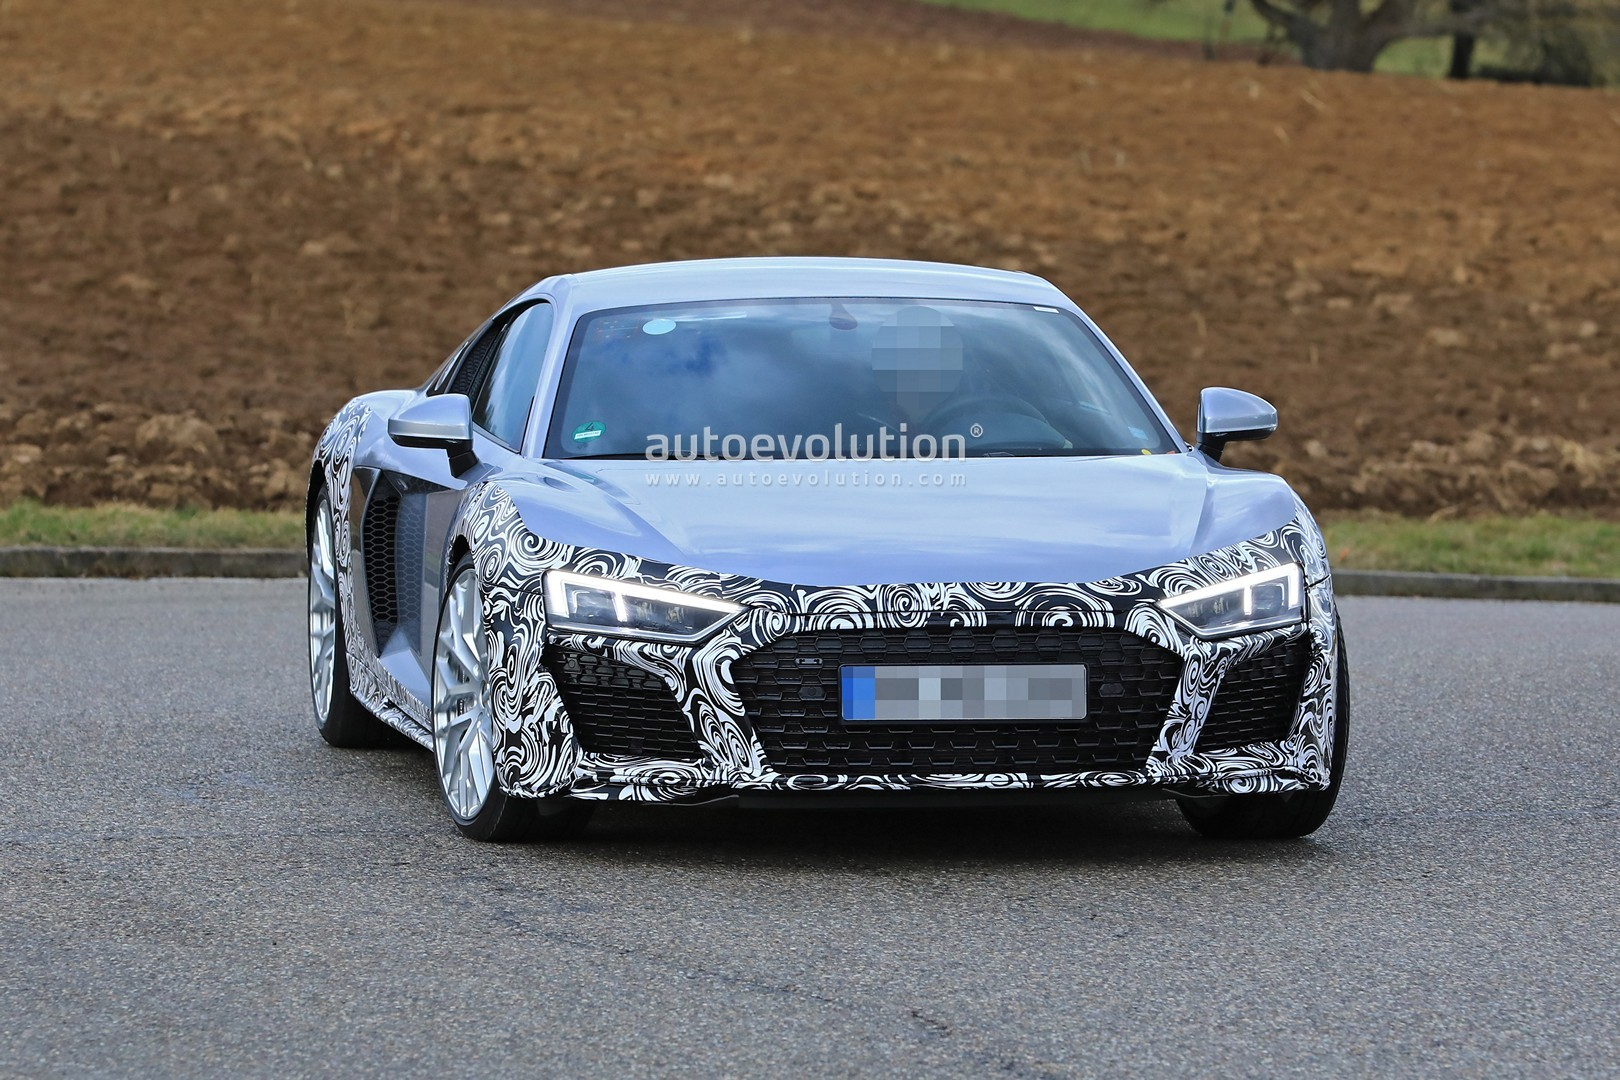 2019 Audi R8 V6 Rumored To Debut At 2018 New York Auto Show